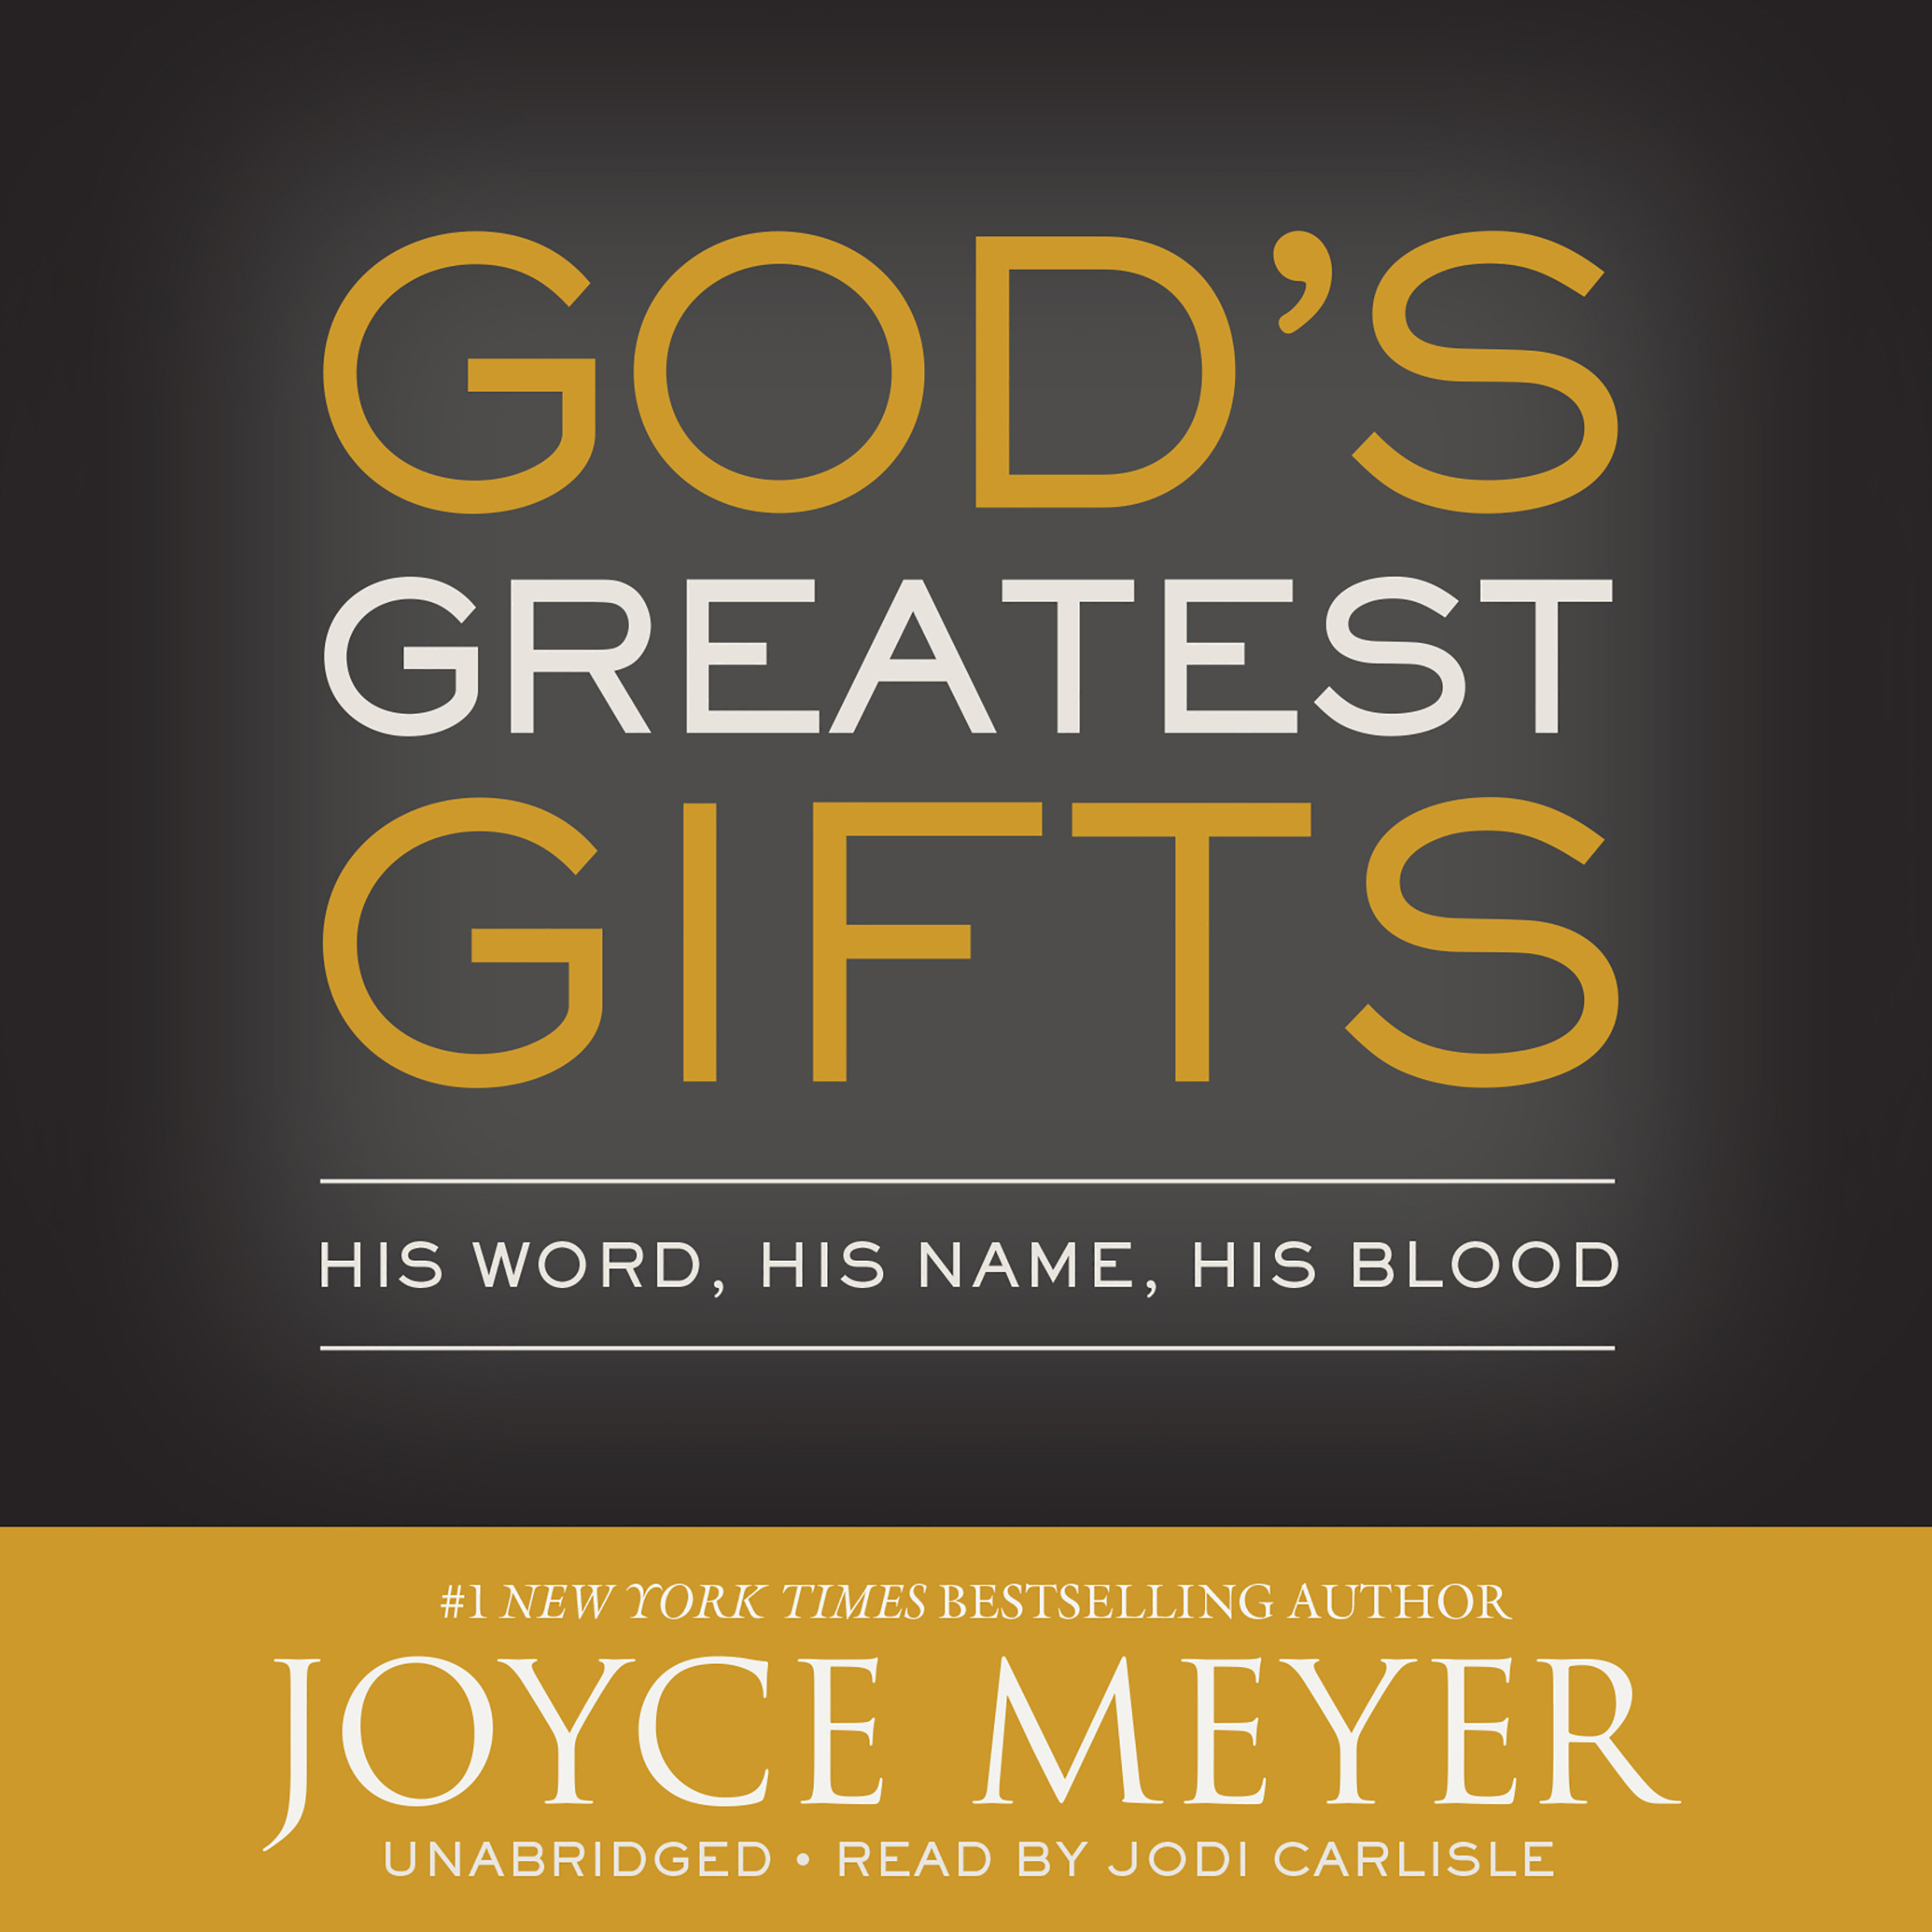 Printable God's Greatest Gifts: His Word, His Name, His Blood Audiobook Cover Art